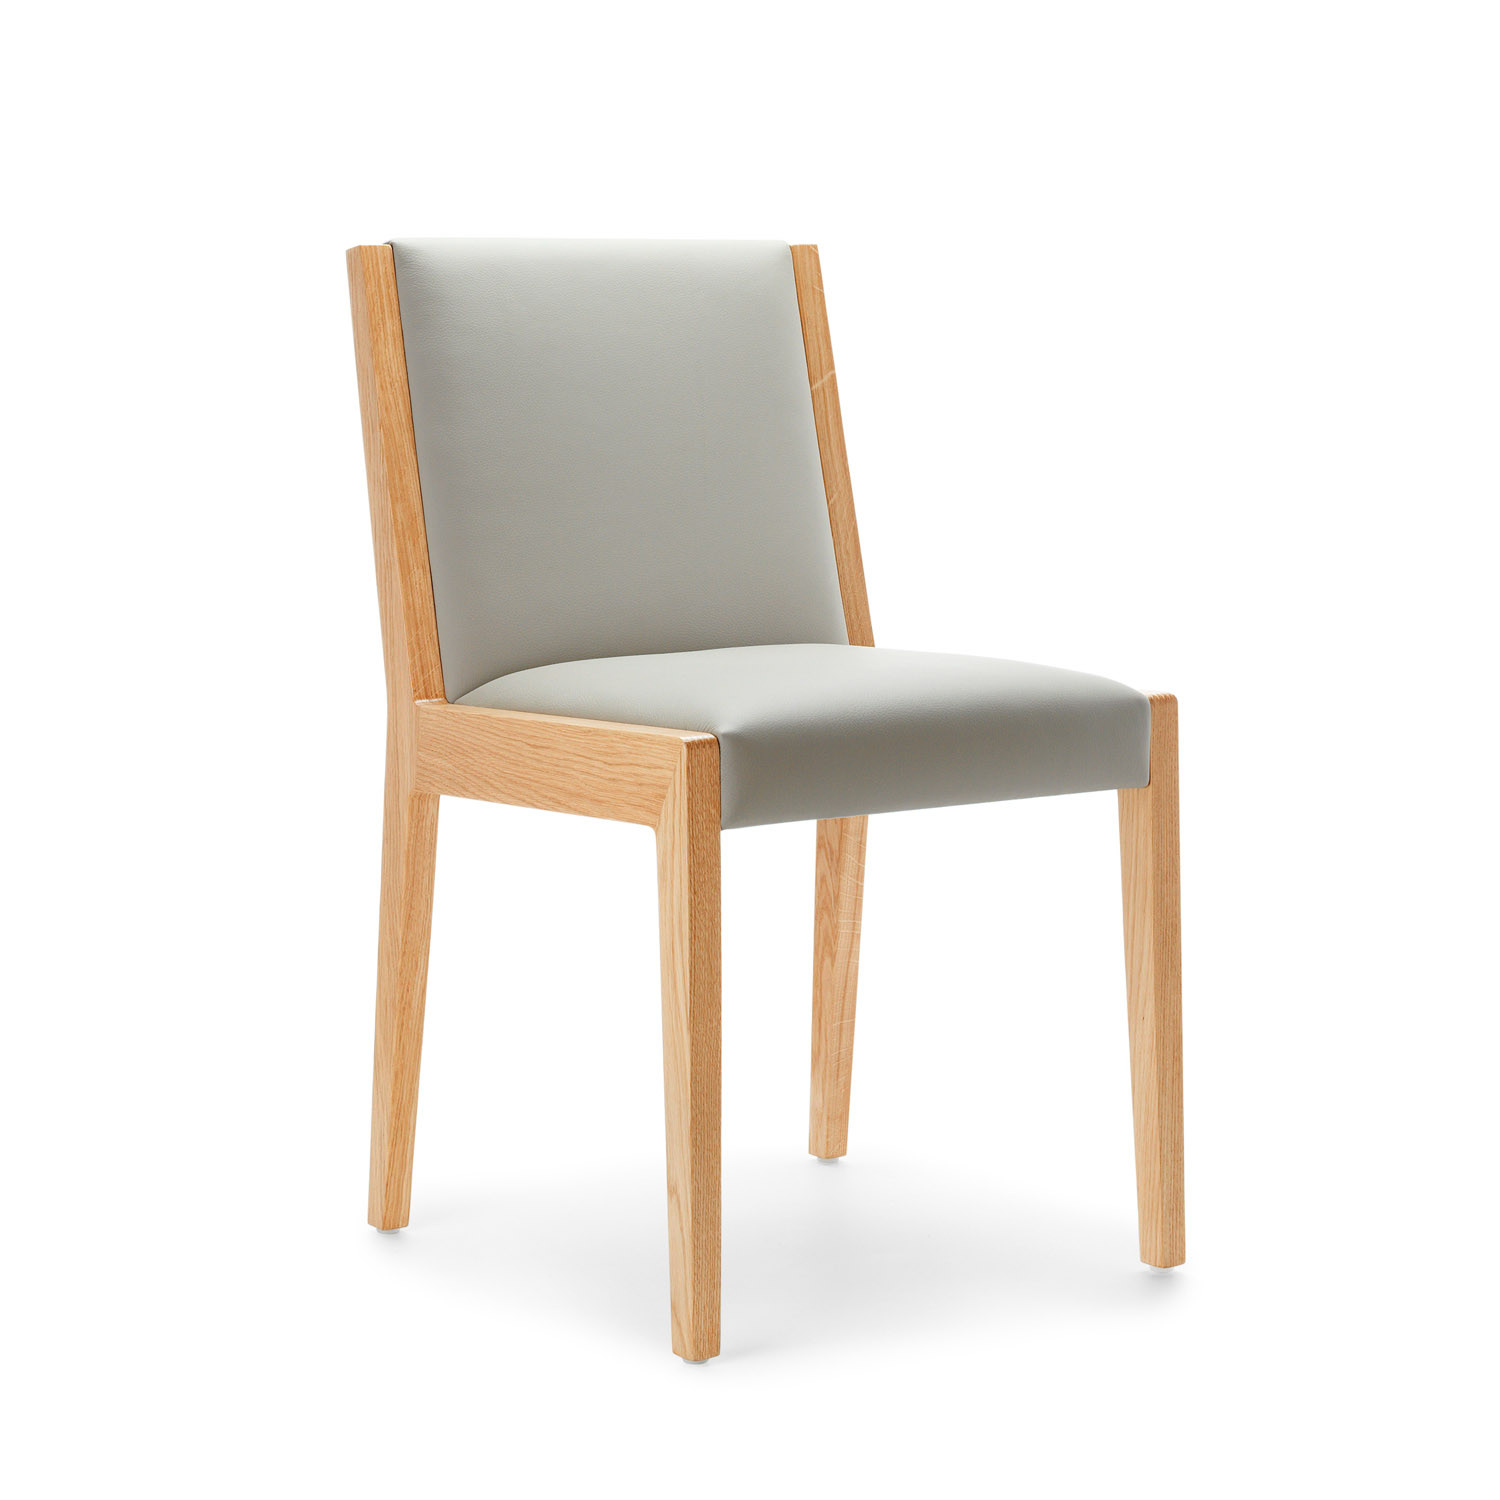 Lyndon Design Keats Dining Chair